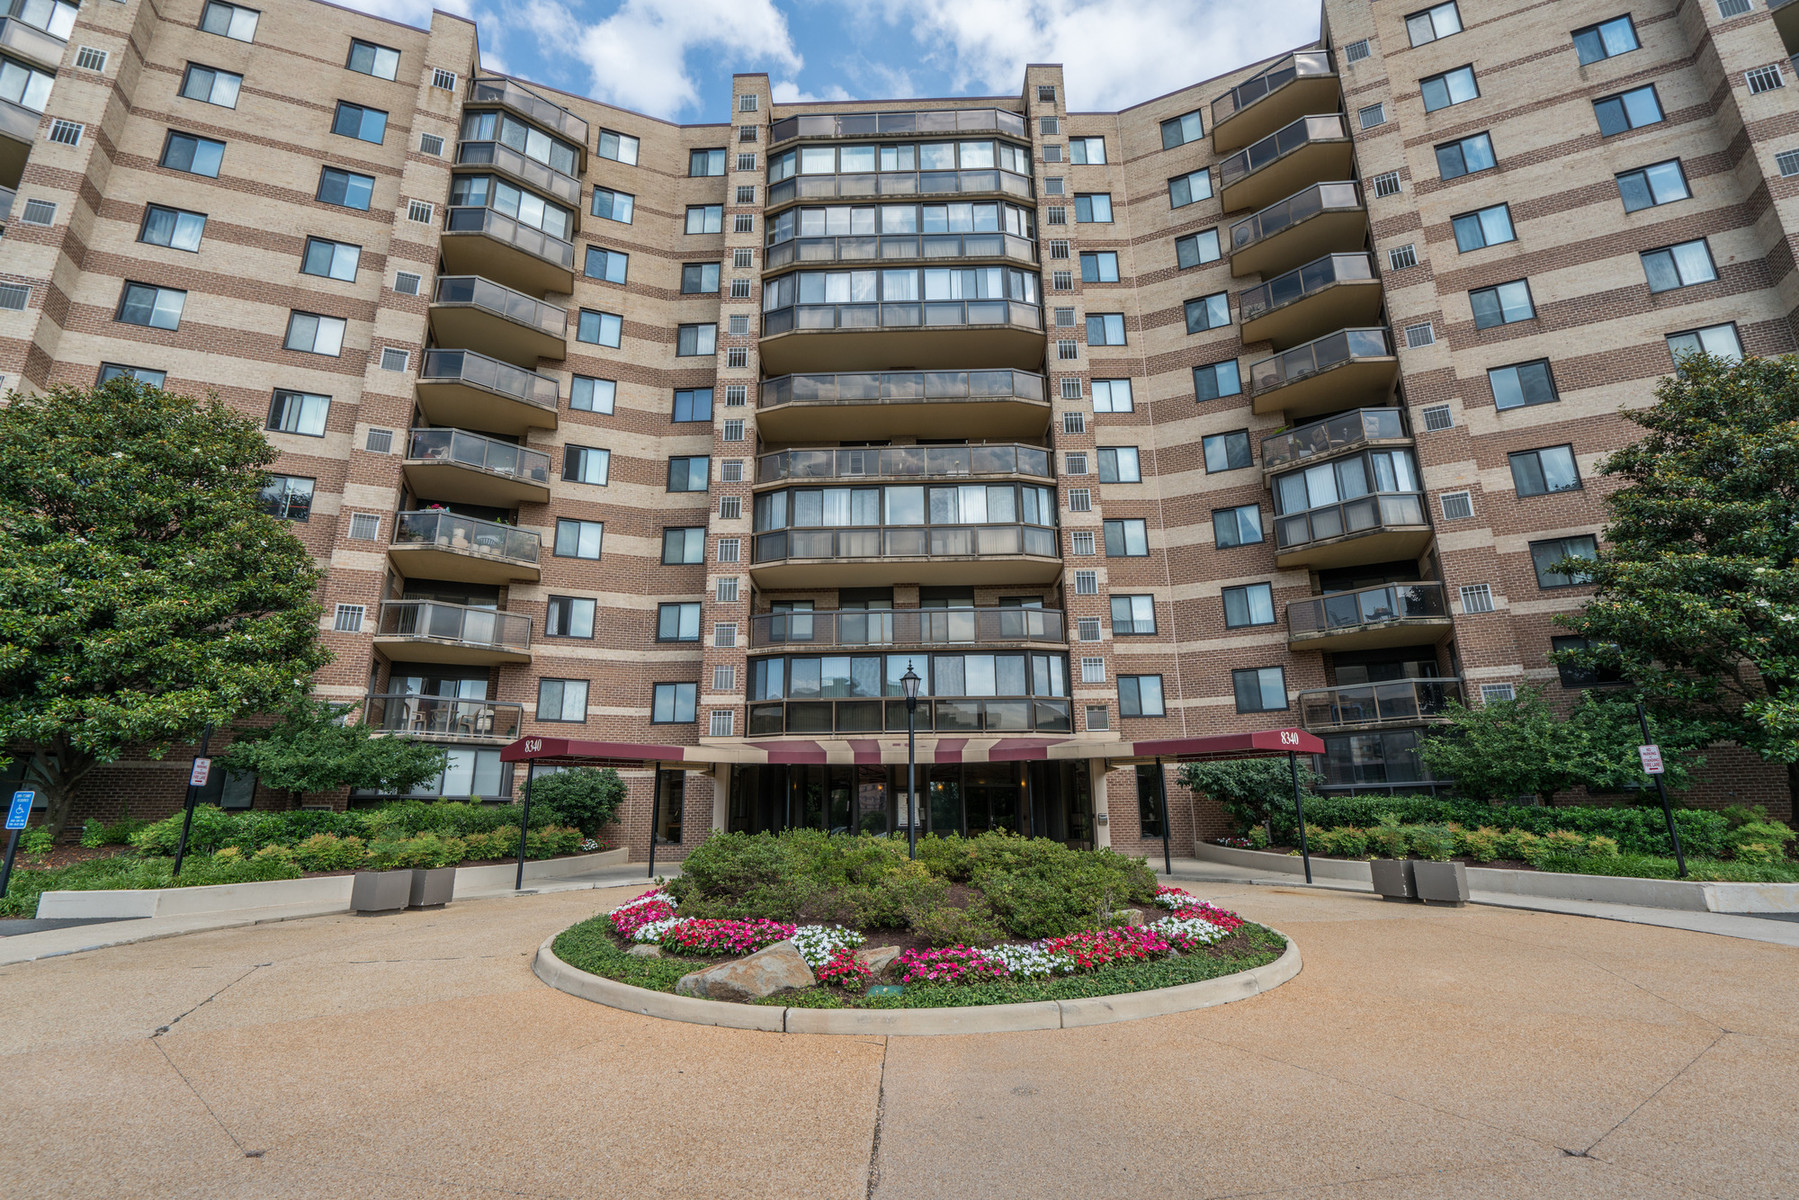 Condominium for Rent at 8340 Greensboro Drive 1021, Mclean 8340 Greensboro Dr 1021 McLean, Virginia 22102 United States